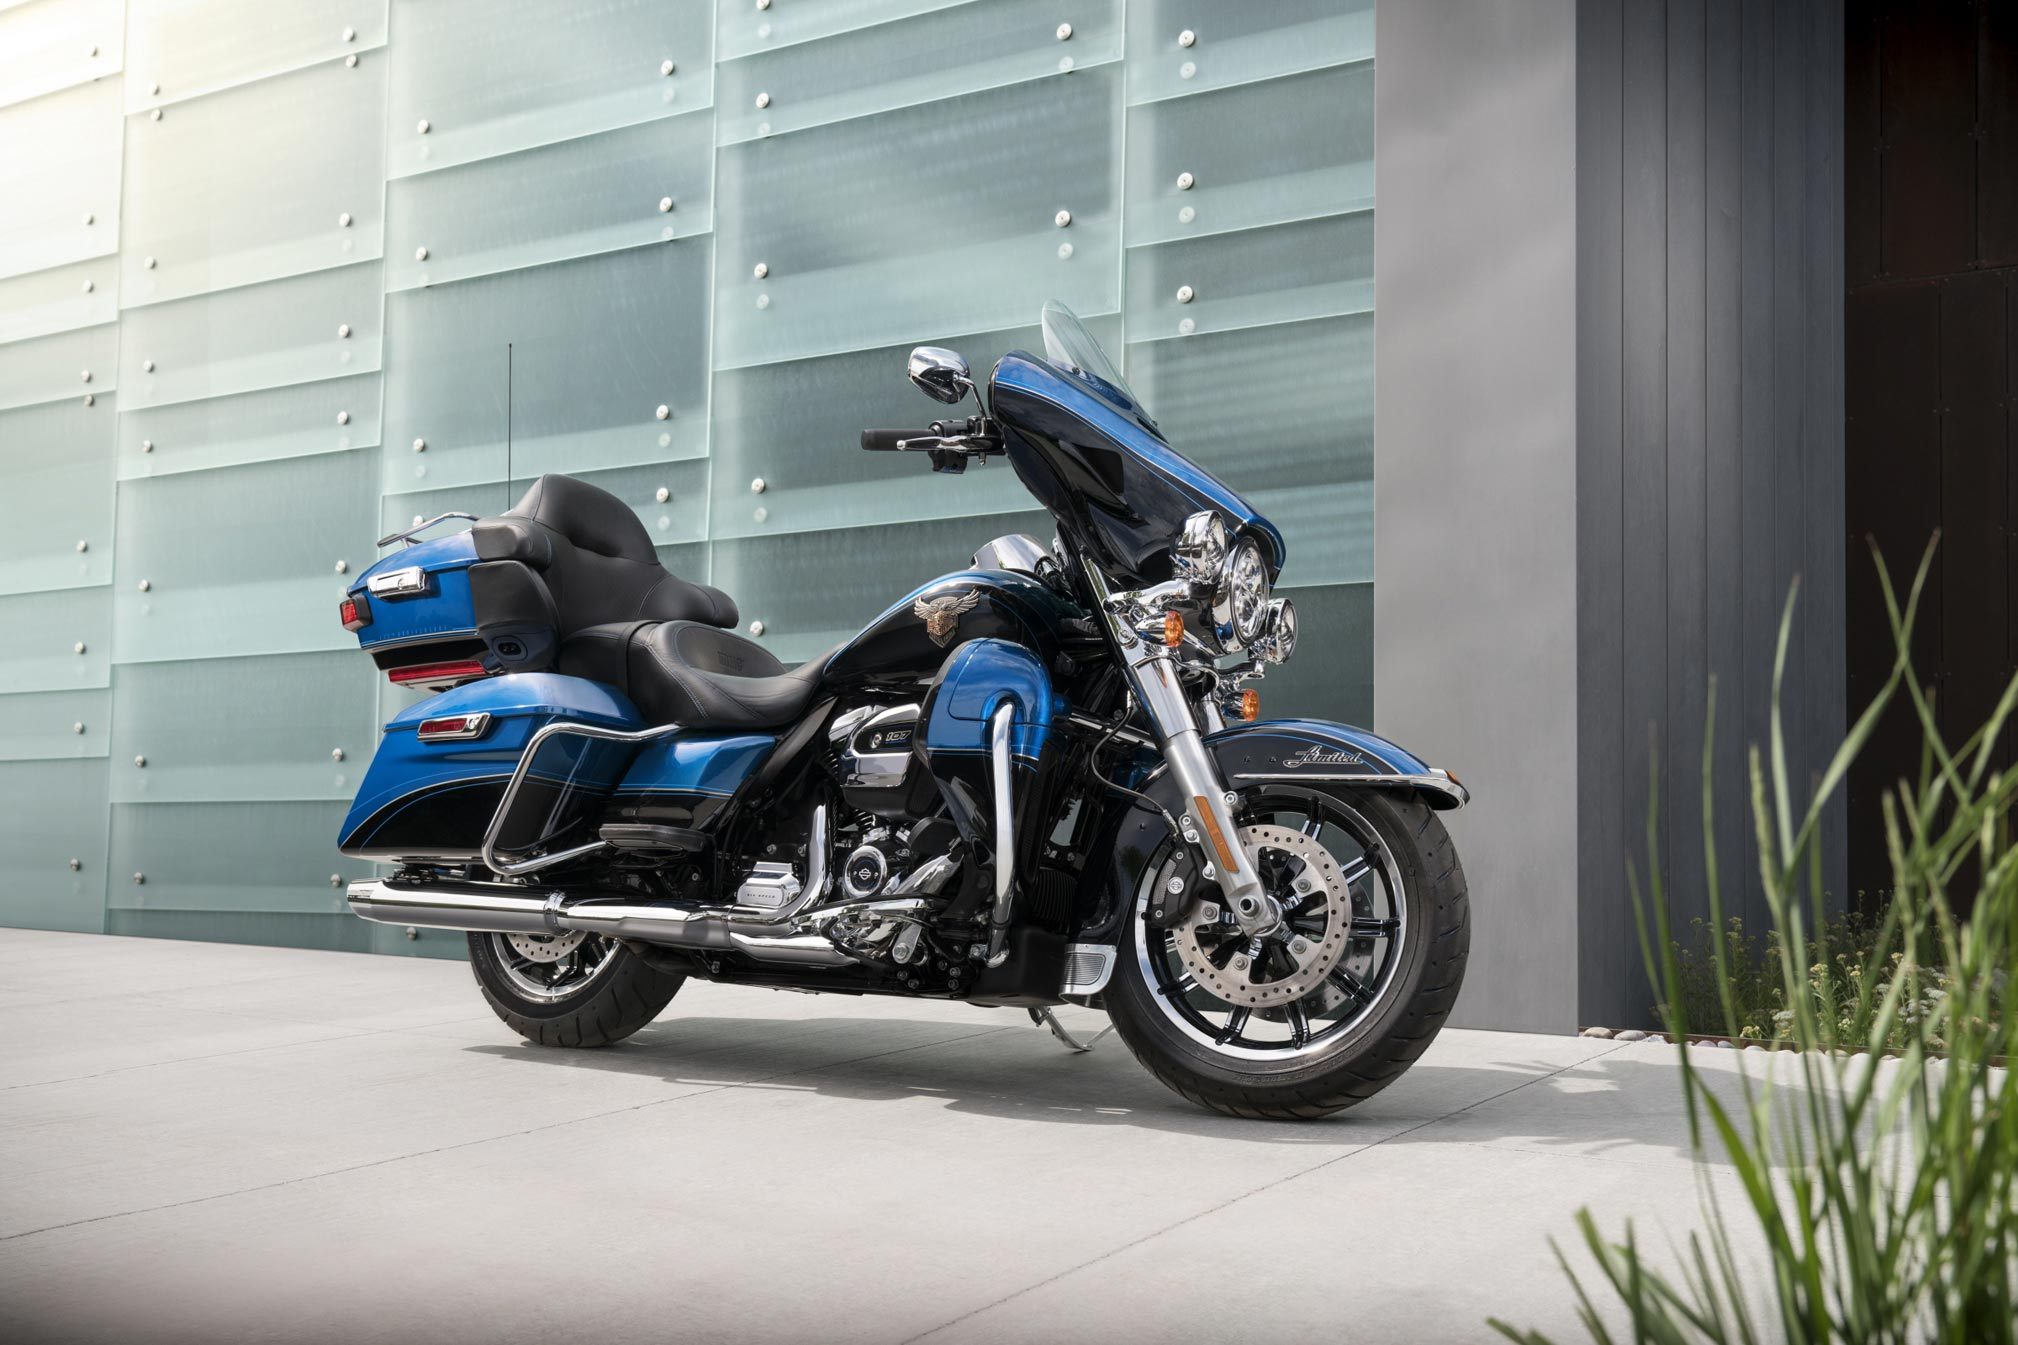 2018 Harley Davidson Ultra Limited 115th Anniversary